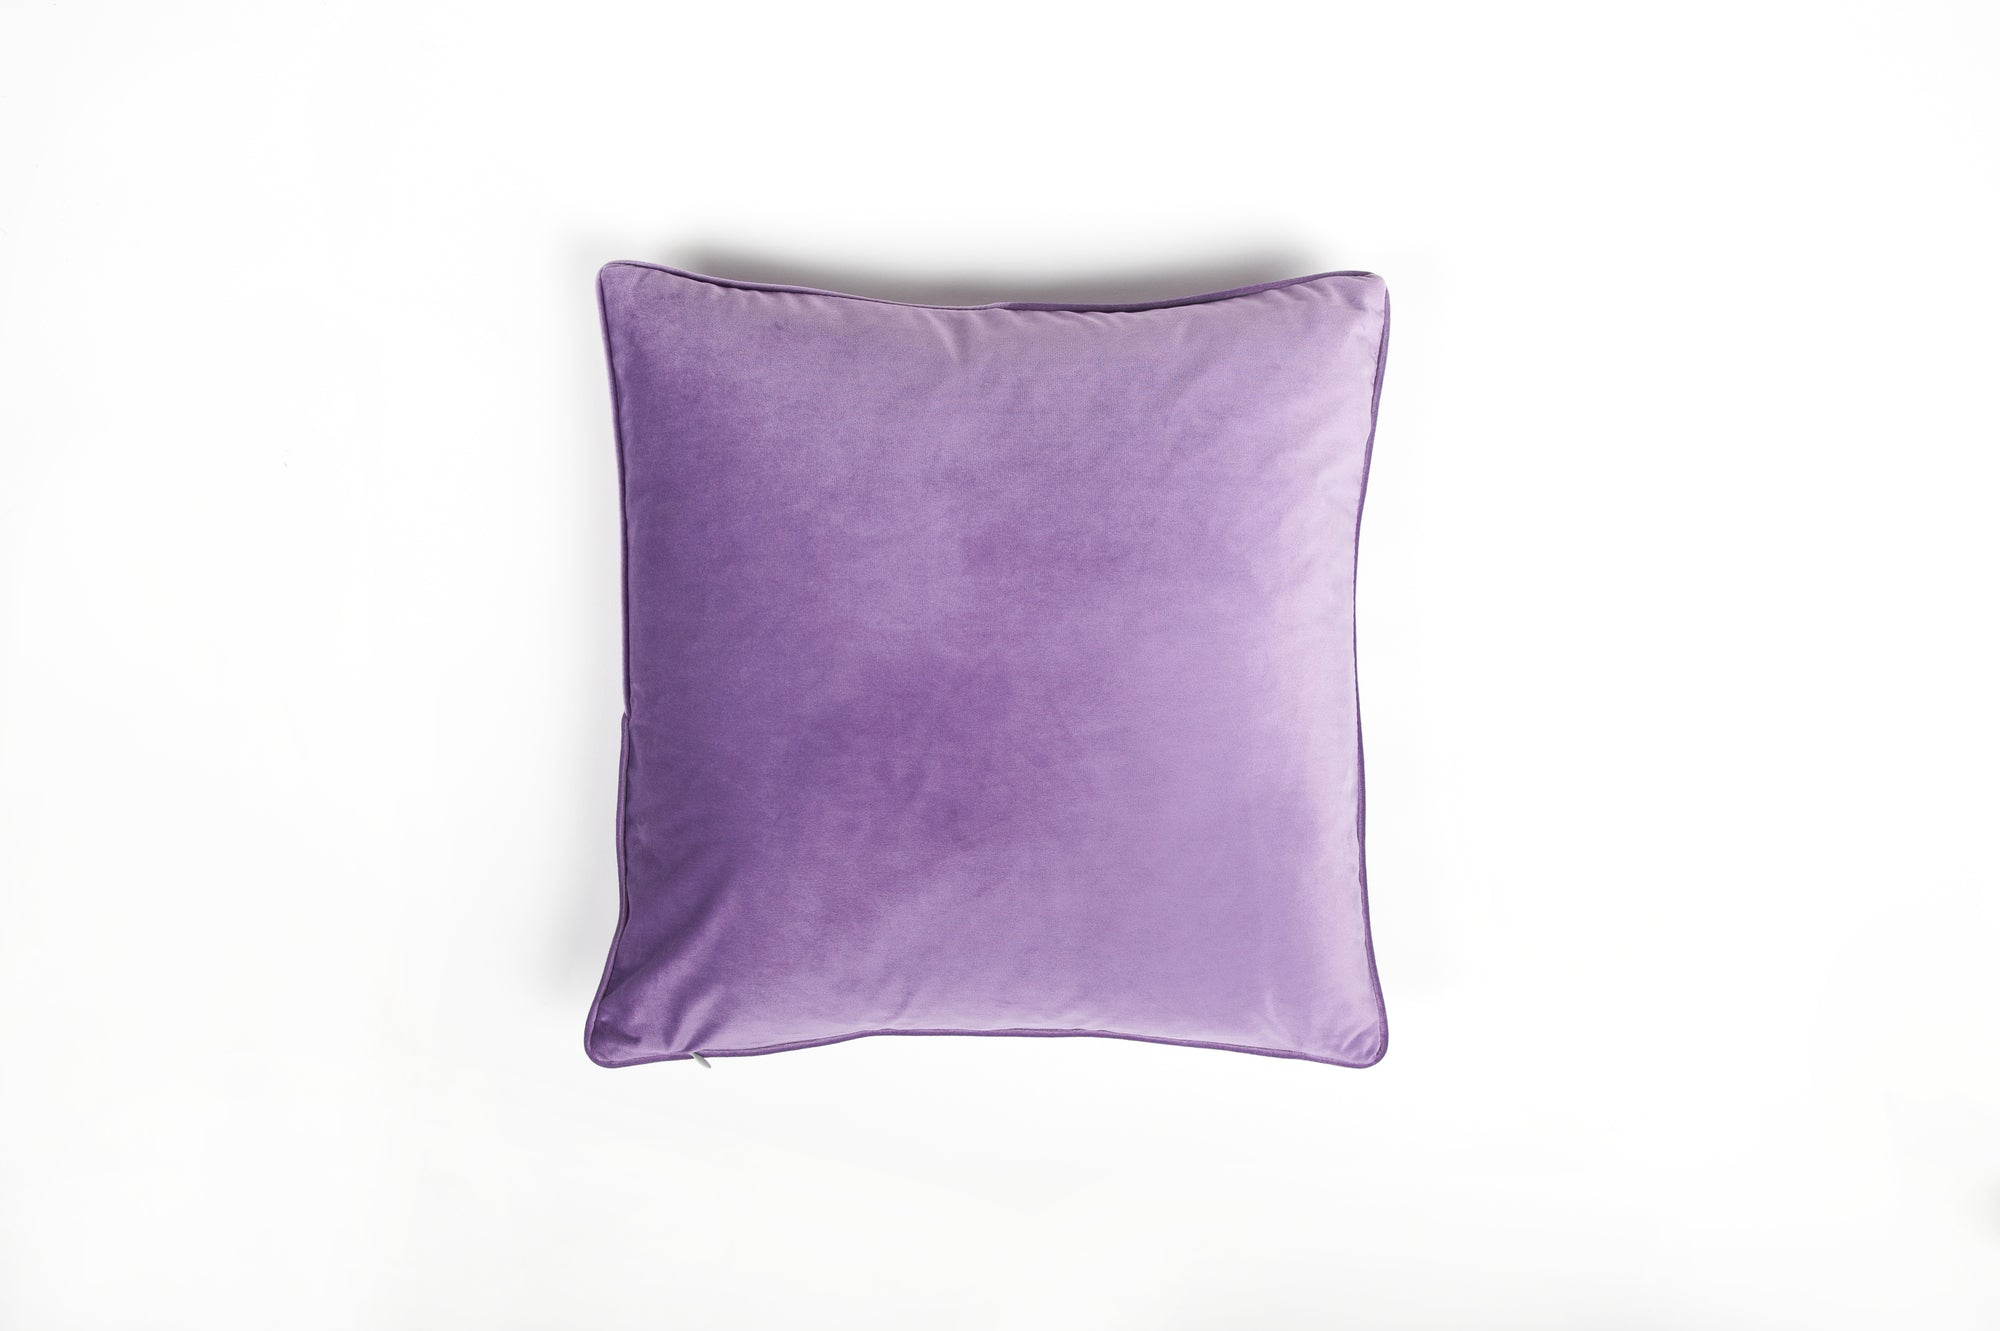 Velvet Lavender Piped Cushion - Fervor + Hue